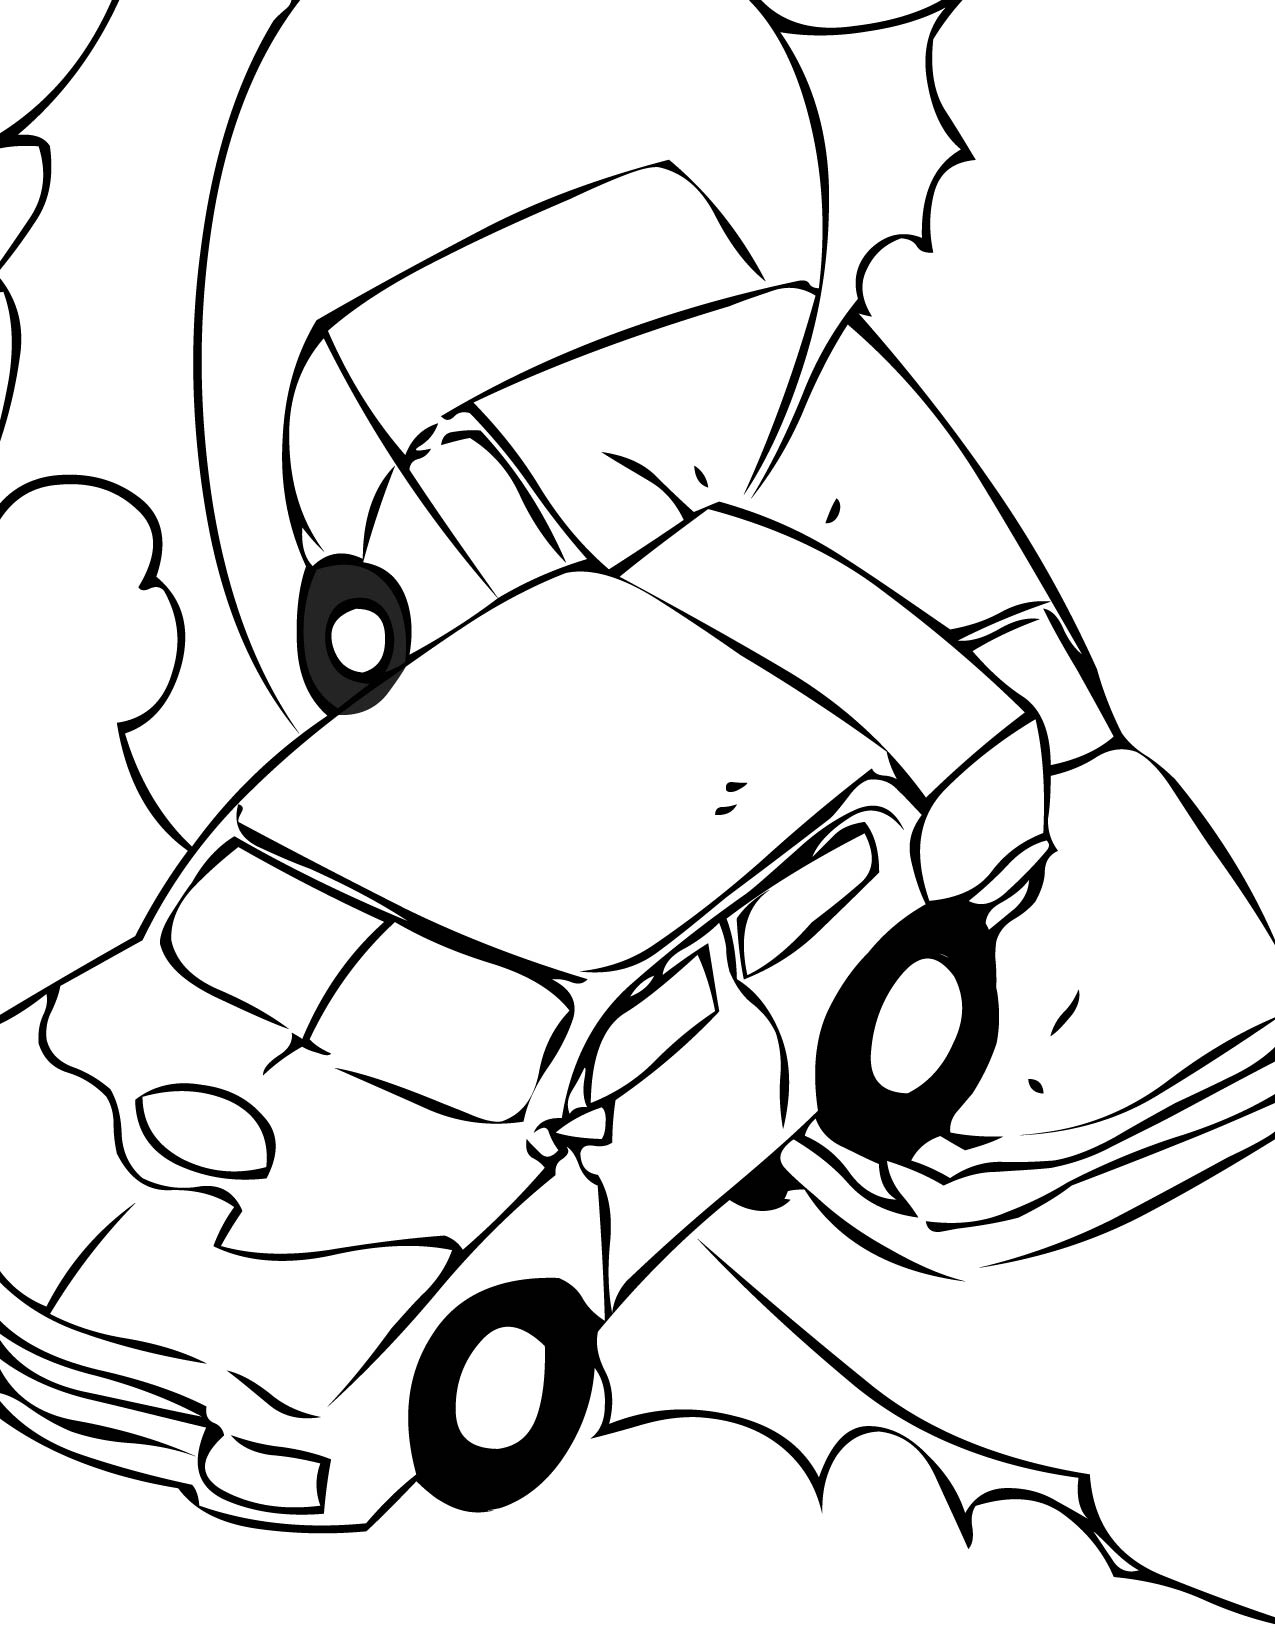 wiring diagram database  crash derby cars coloring pages coloring pages